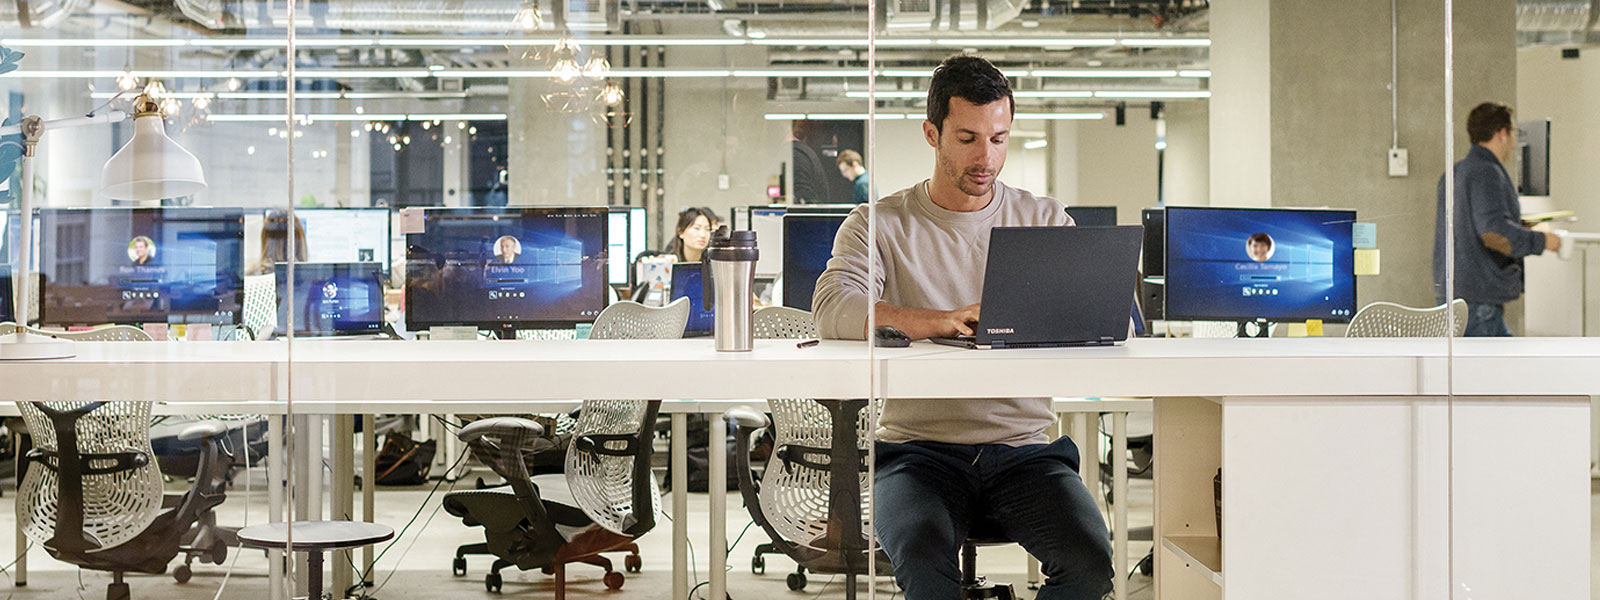 Man using a laptop in an open office space